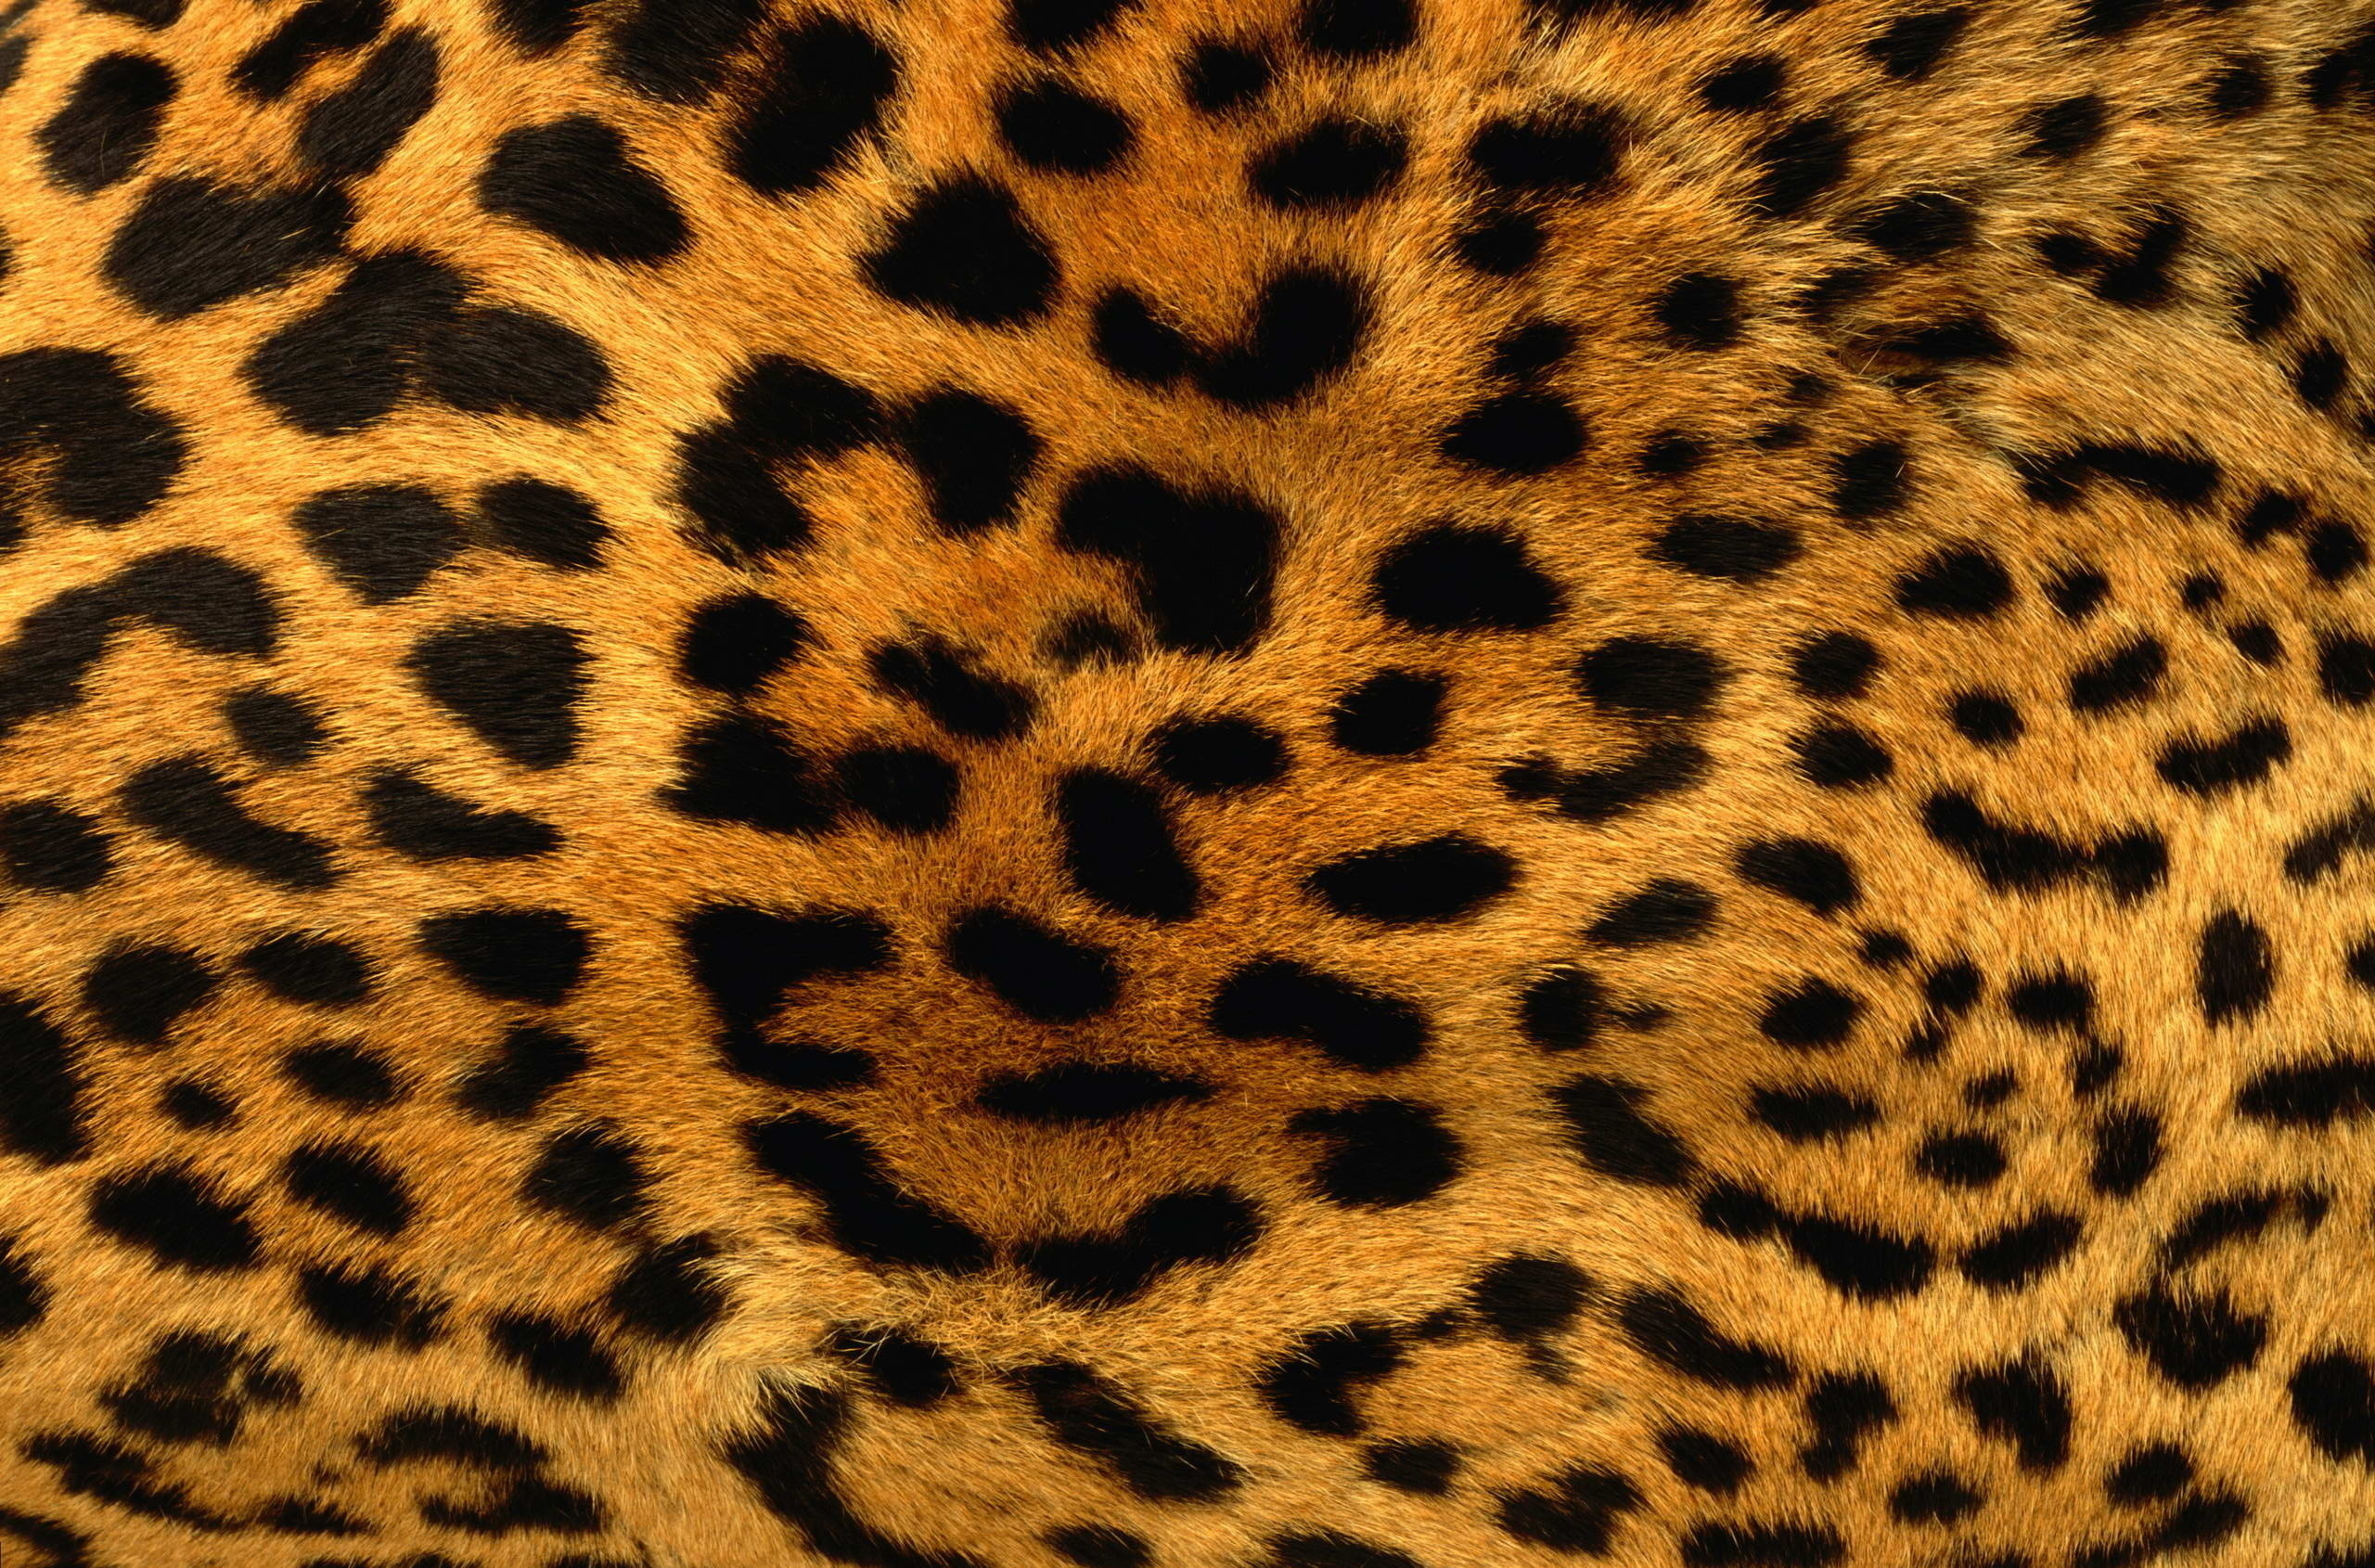 17082 download wallpaper Background, Leopards screensavers and pictures for free